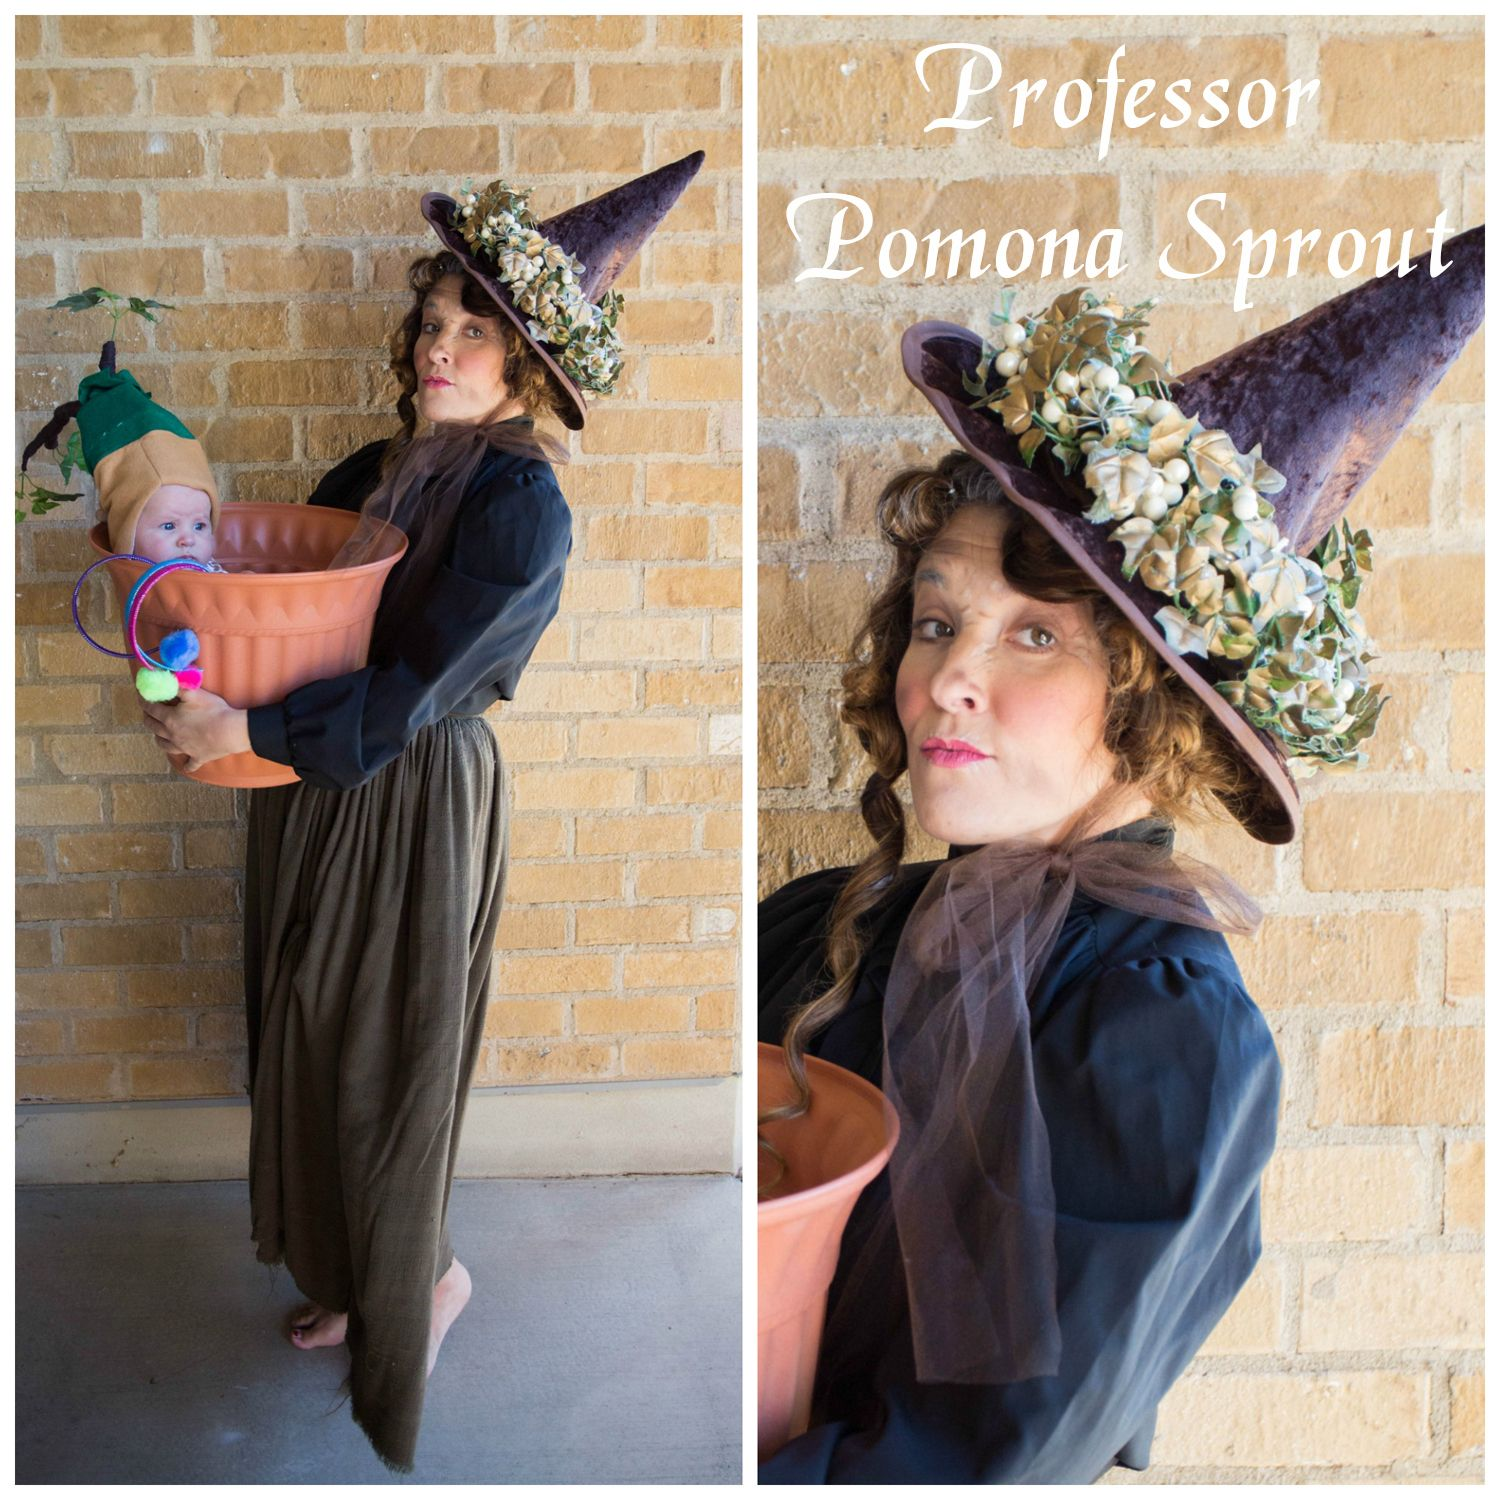 Harry Potter Costume Ideas Delicious Reads Professor Sprout And Mandrake Costume Harry Potter Costume Diy Harry Potter Costume Baby Harry Potter Costume